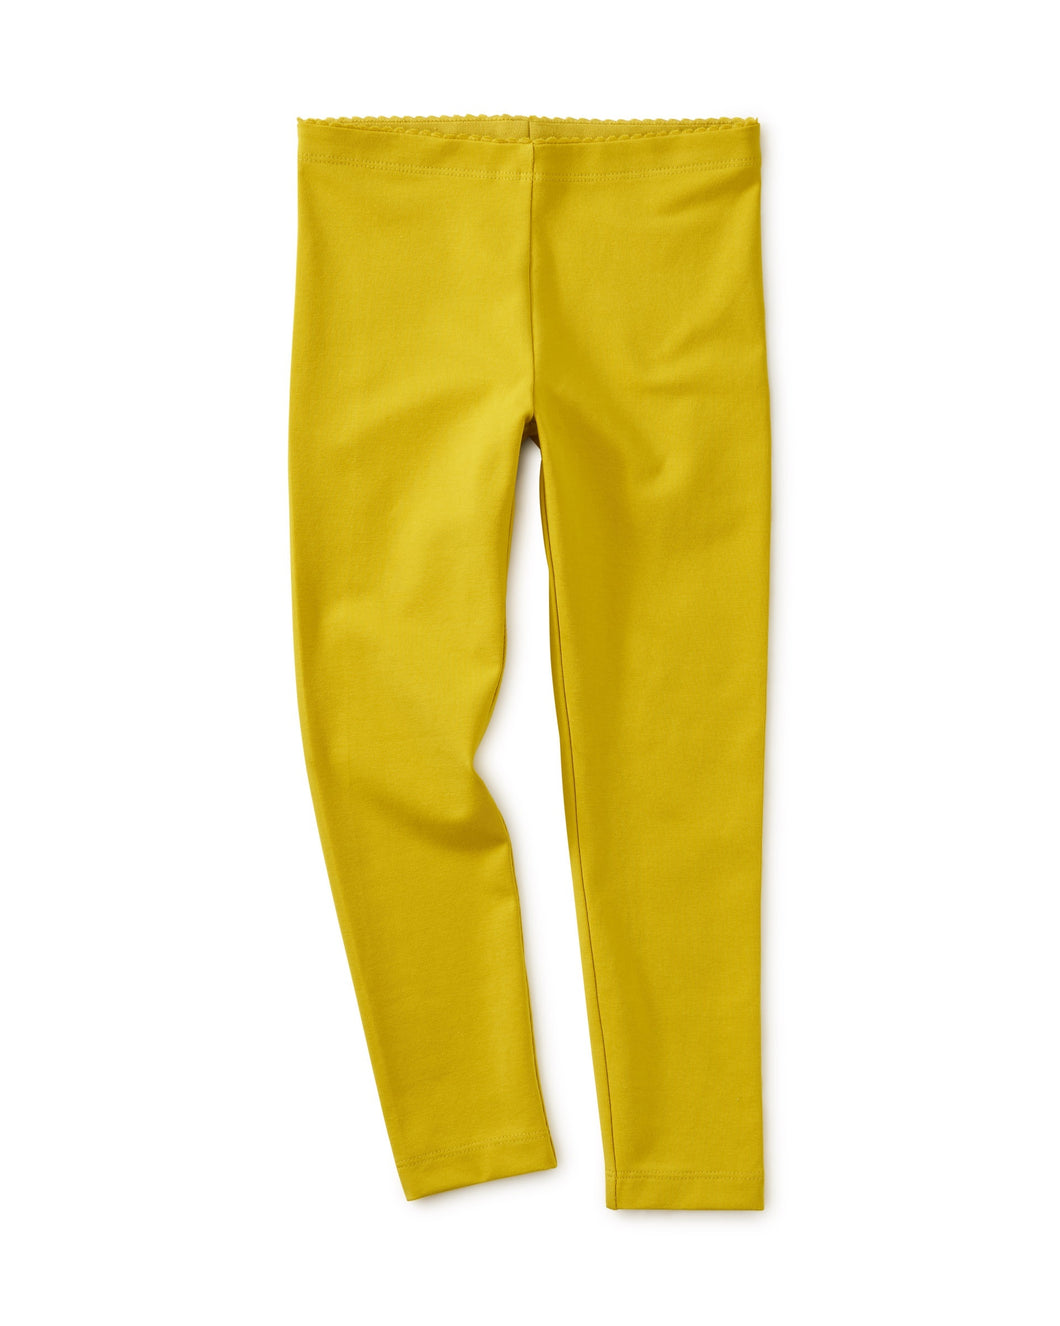 Yellow Baby Legging